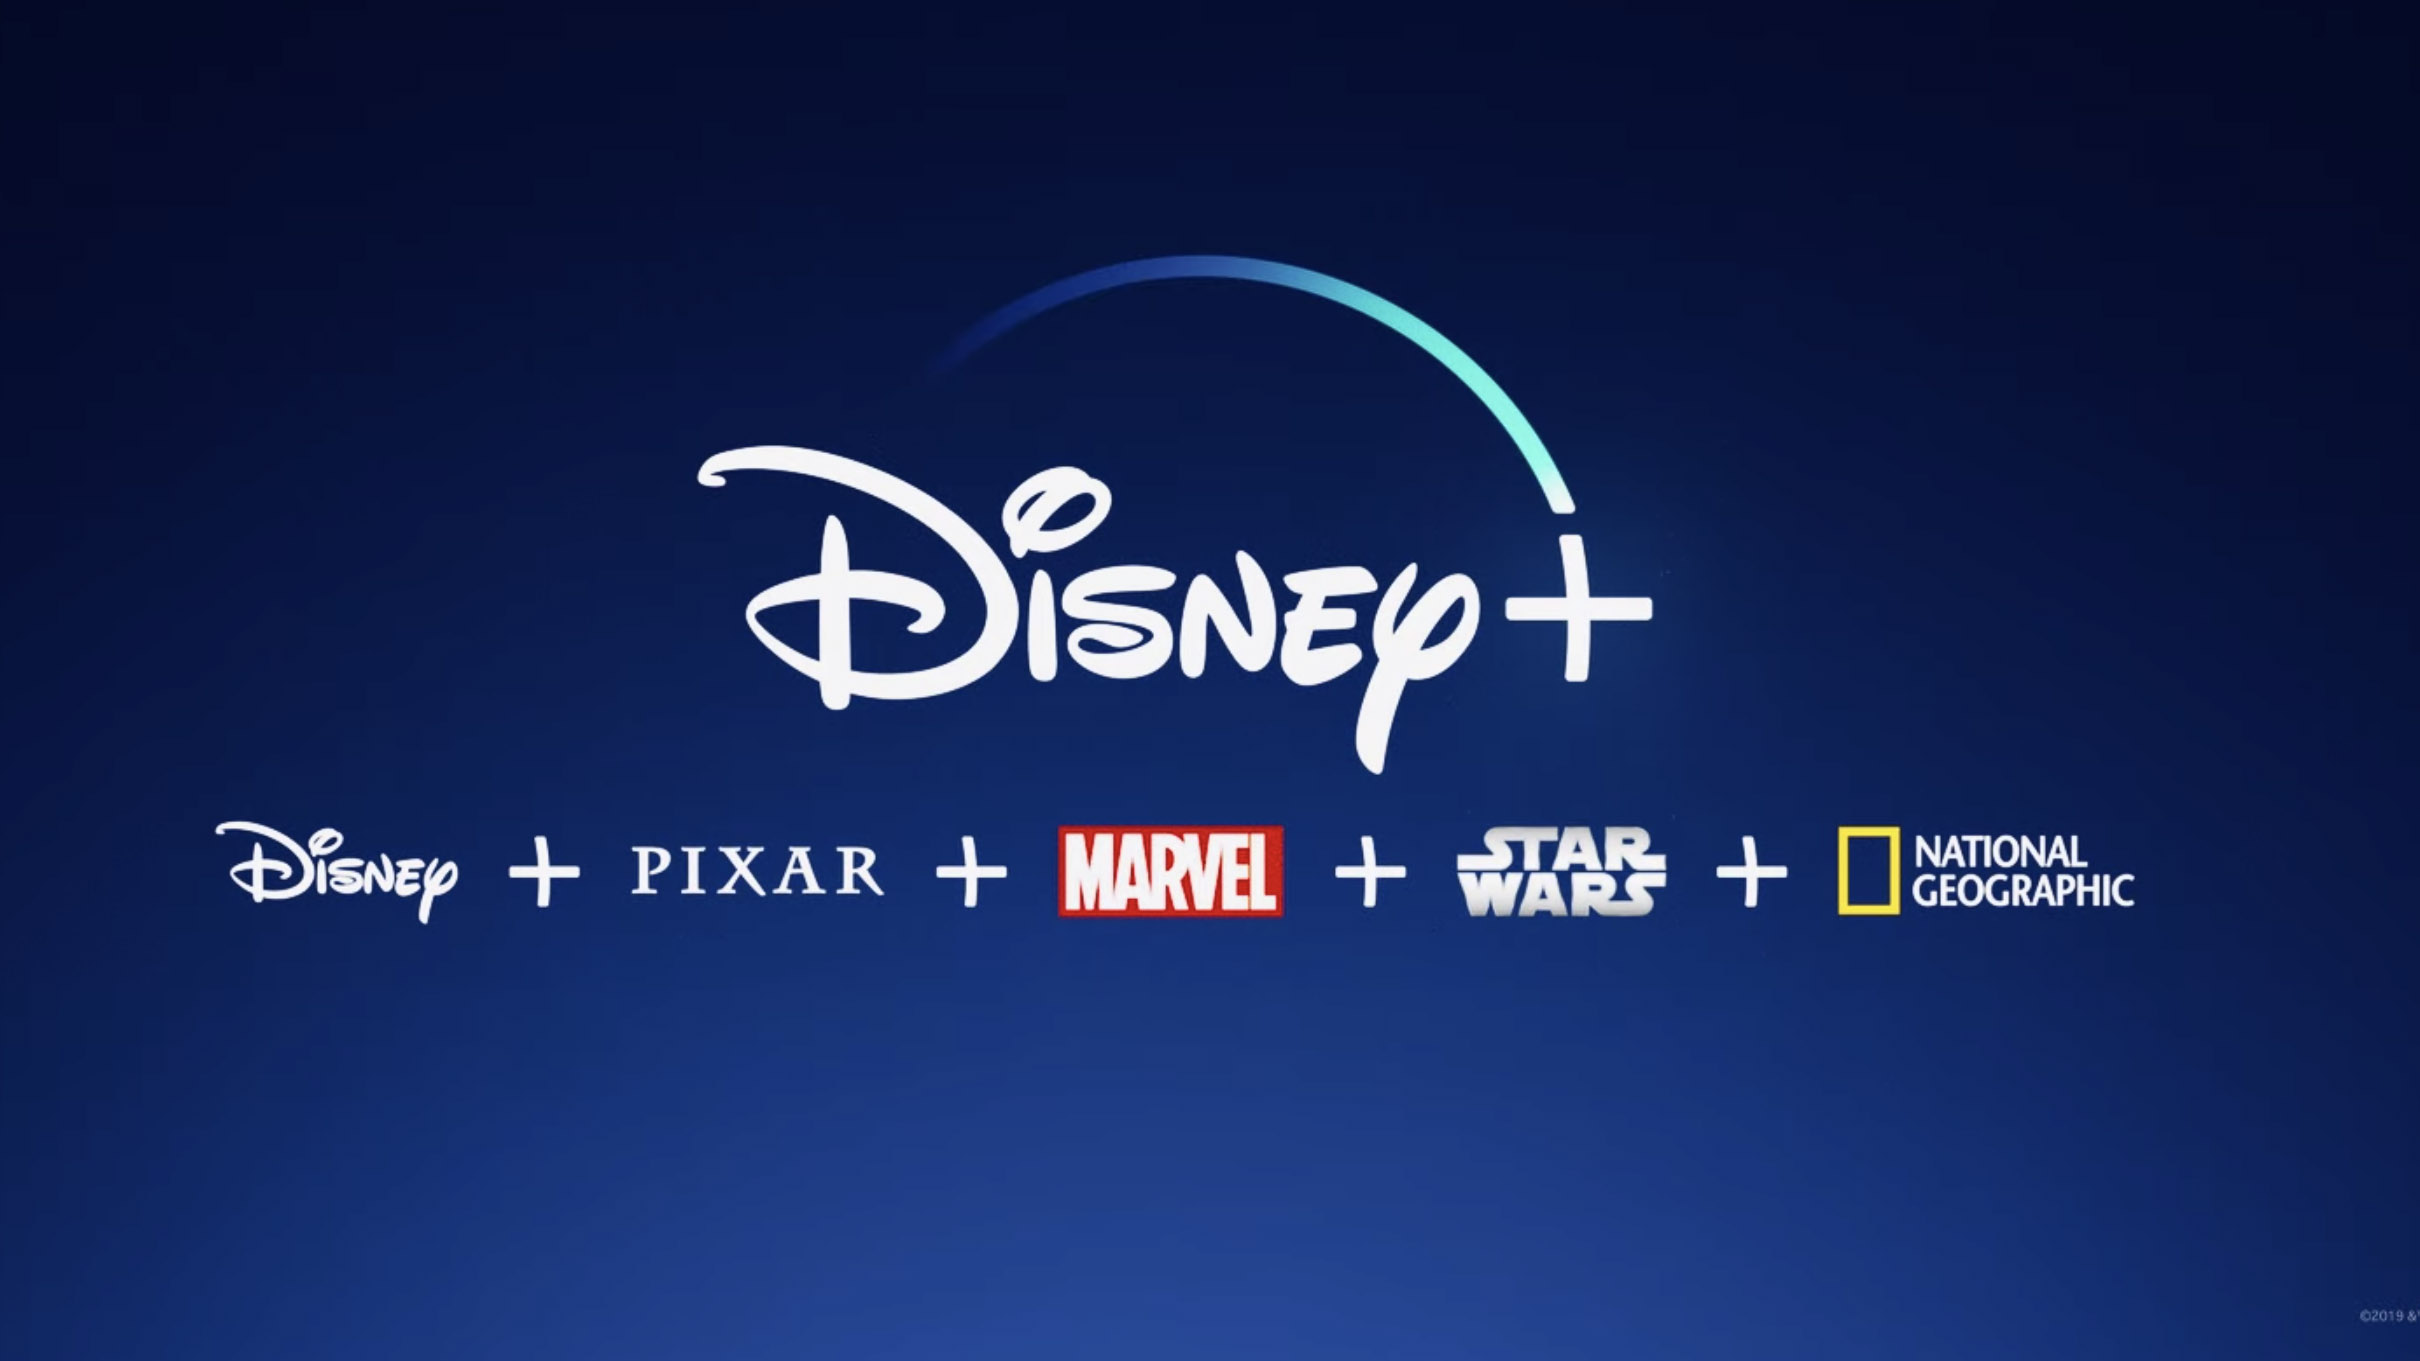 Disney Plus and its major properties